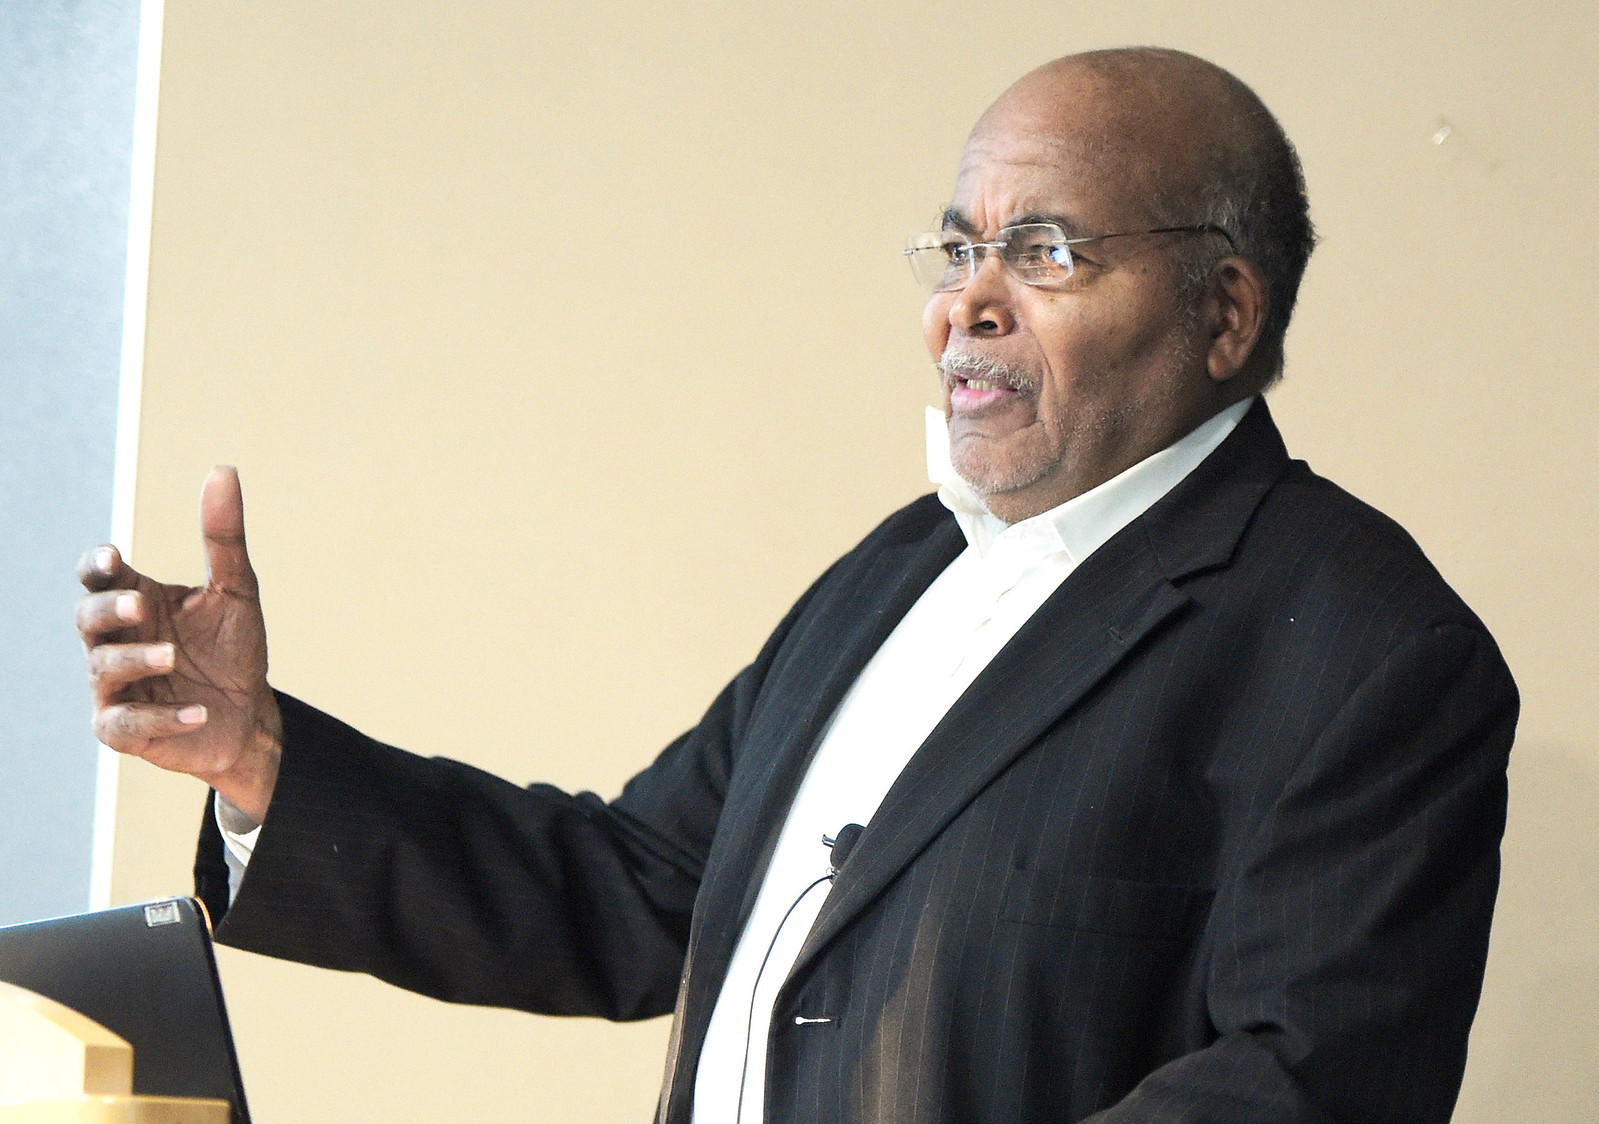 Civil rights activist and Freedom Rider Thomas Armstrong III speaks to a group of high school history students at the Algonquin Area Public Library Wednesday, Feb. 22, 2017, about his work during the civil rights movement.